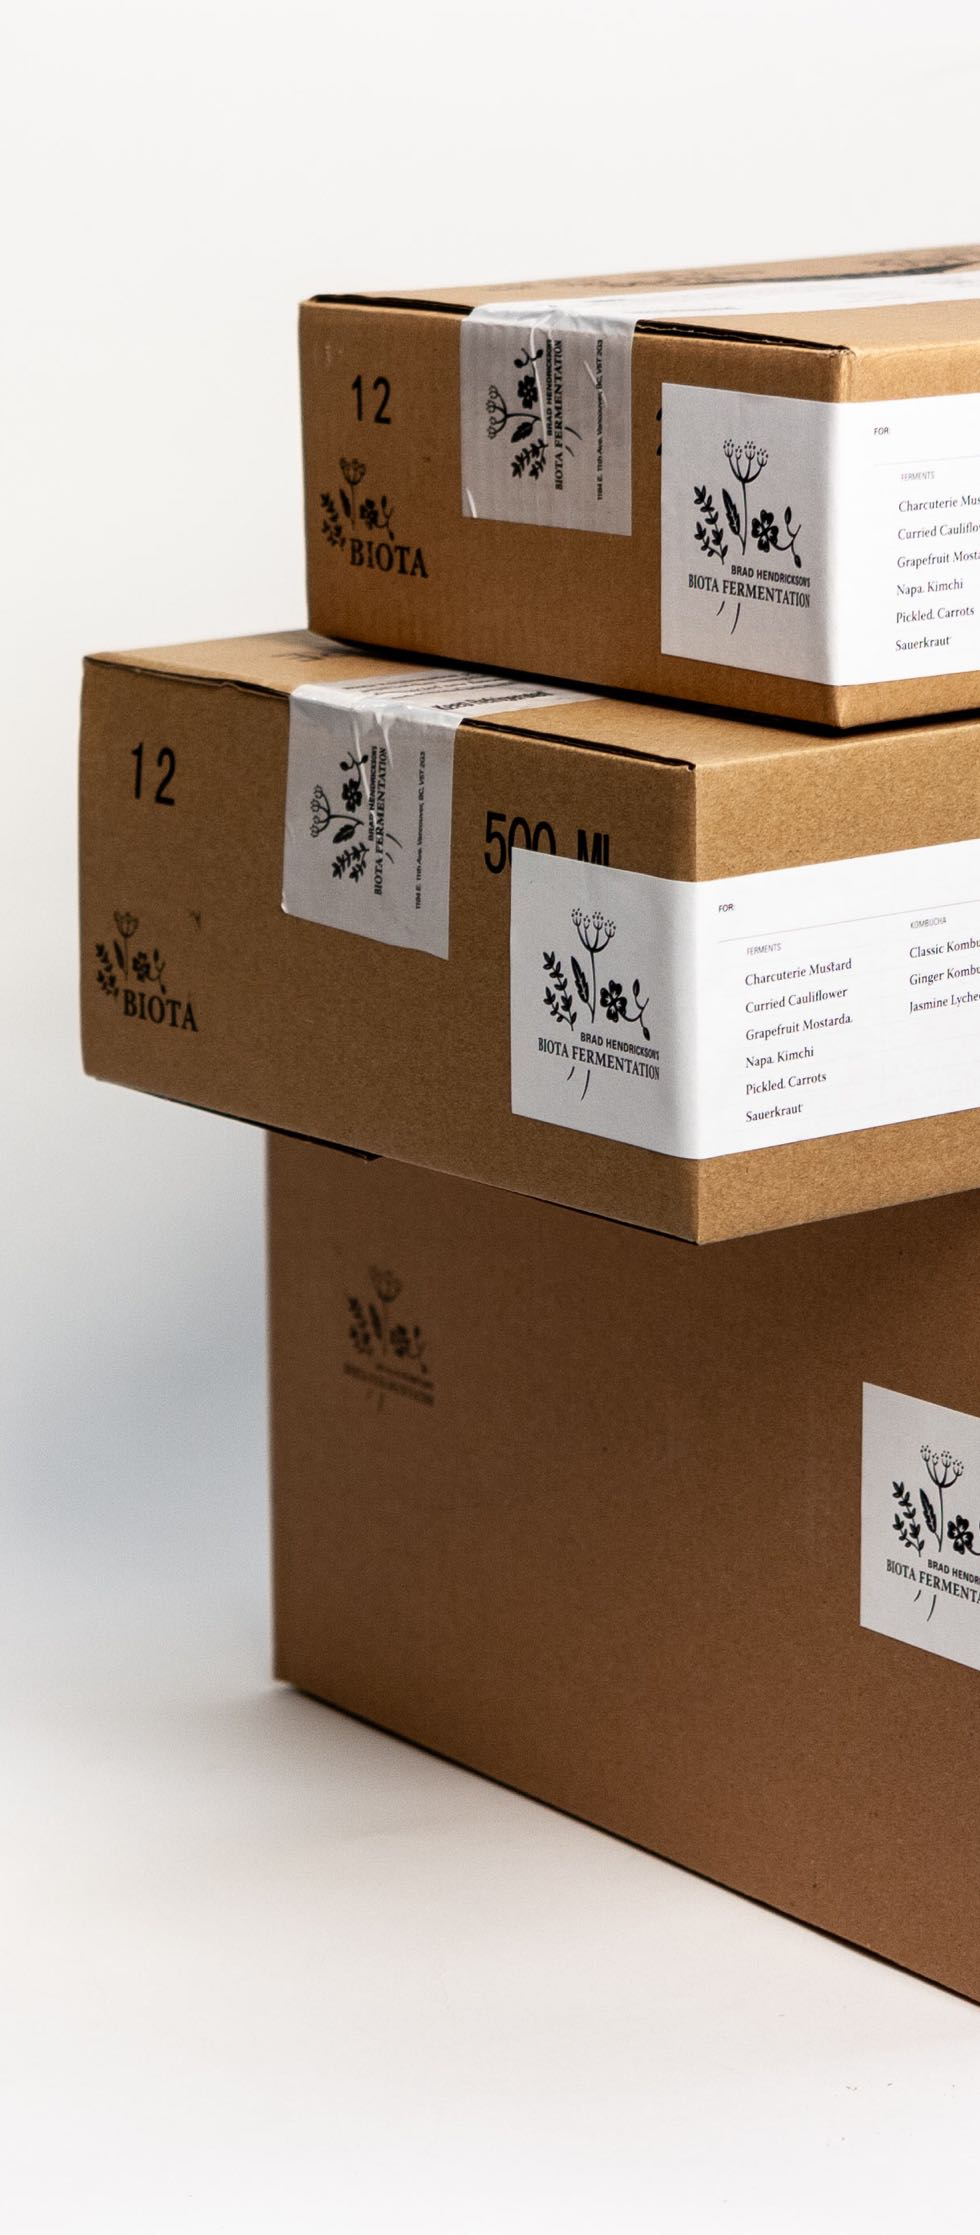 Biota Fermentation Shipping Boxes stacked together with custom printed tape, labels and branding — by Dima Yagnyuk.